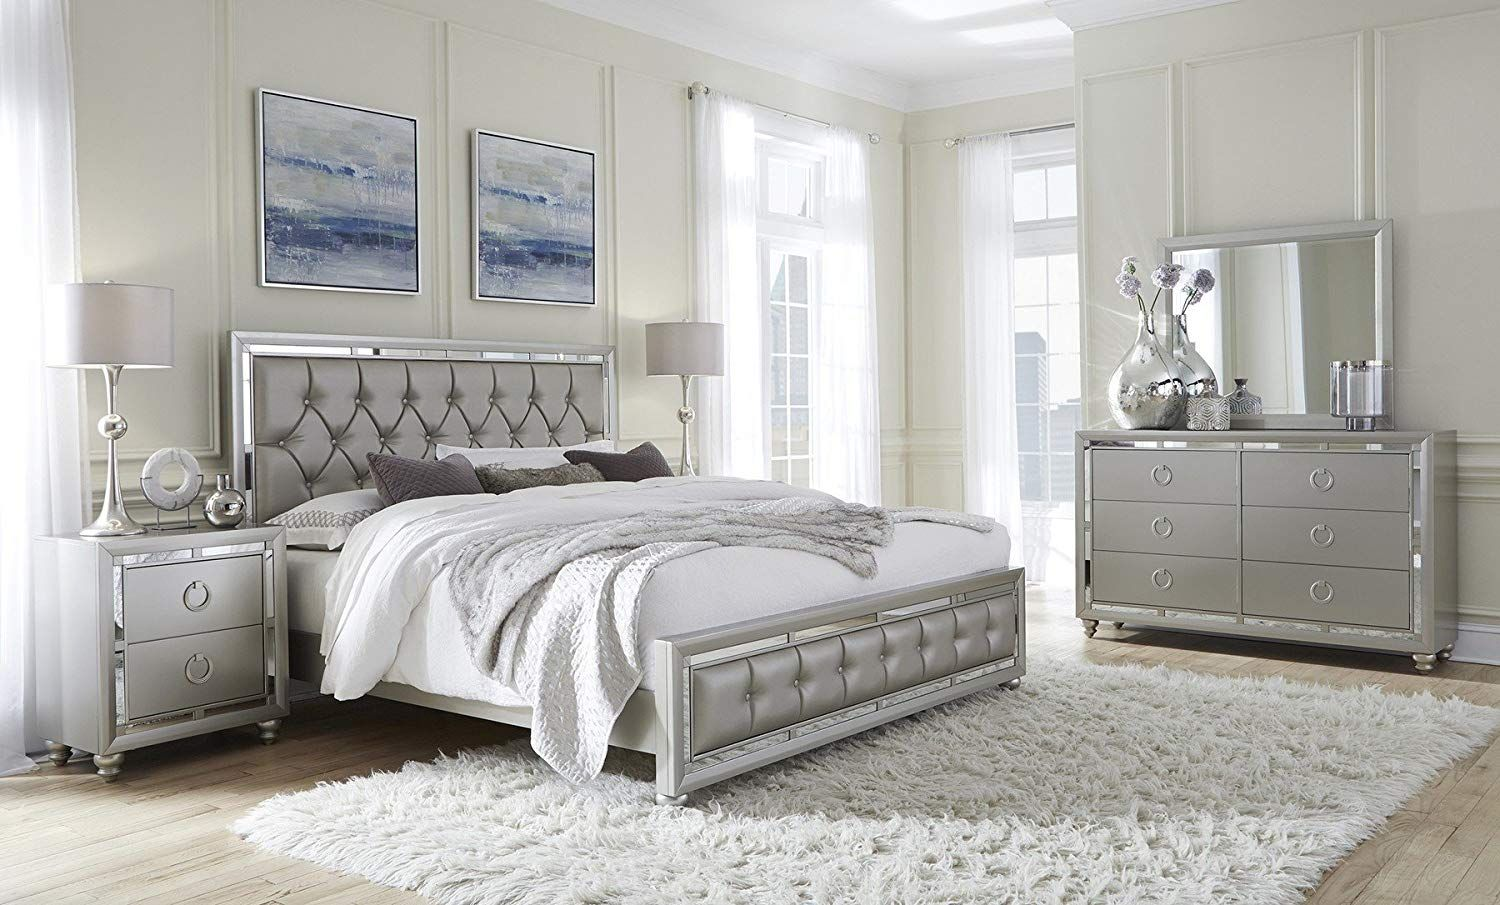 33 Cheap Modern Bedroom Sets You Can Buy Bedroom Furniture Sets Bedroom Sets King Bedroom Sets